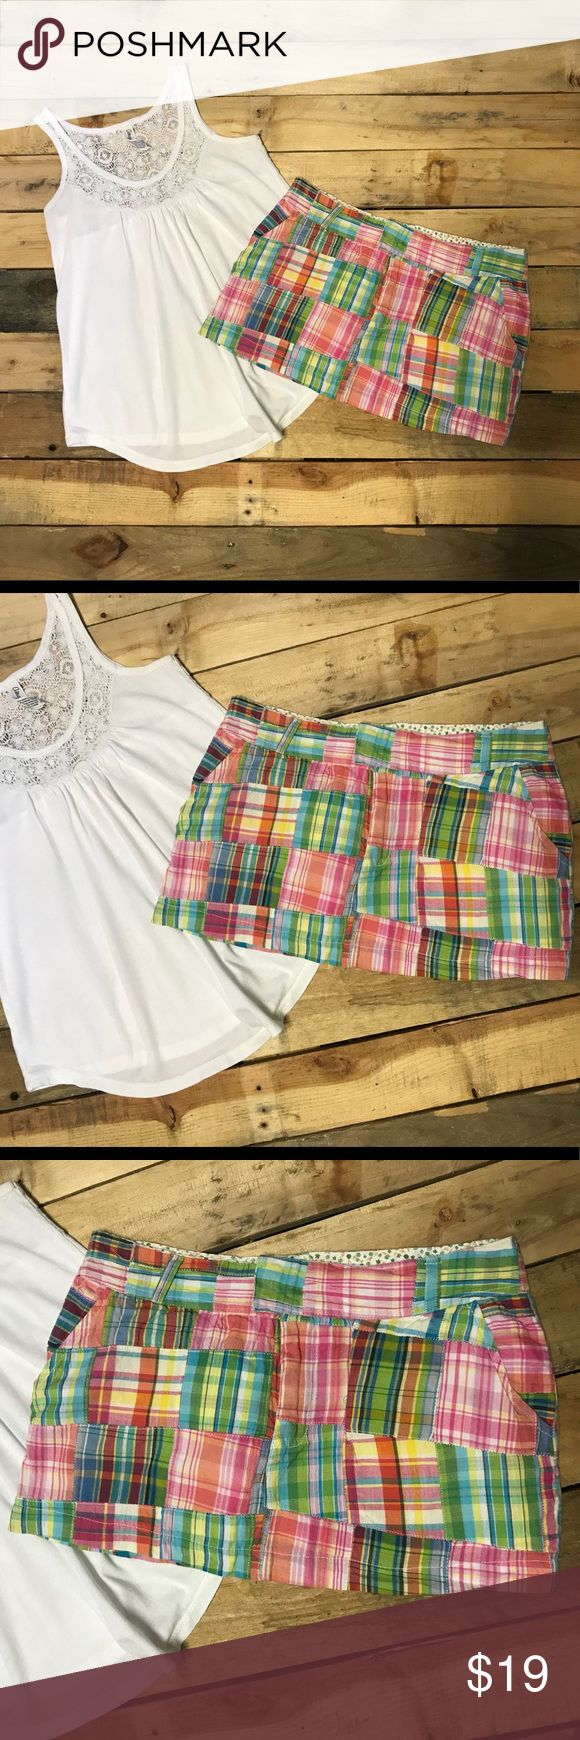 Juniors Top Shirt & Mini Skirt Size XS Juniors white Aeropostale tank top size XS. Has lace at the top. Shirt length 22 inches. Across at the arm pits (laying flat) 15 1/2 inches. Raviya patch work cotton mini skirt size XS. Across at the waist 14 1/2 inches. Length 10 1/2 inches. Both pieces are in excellent used condition. Other